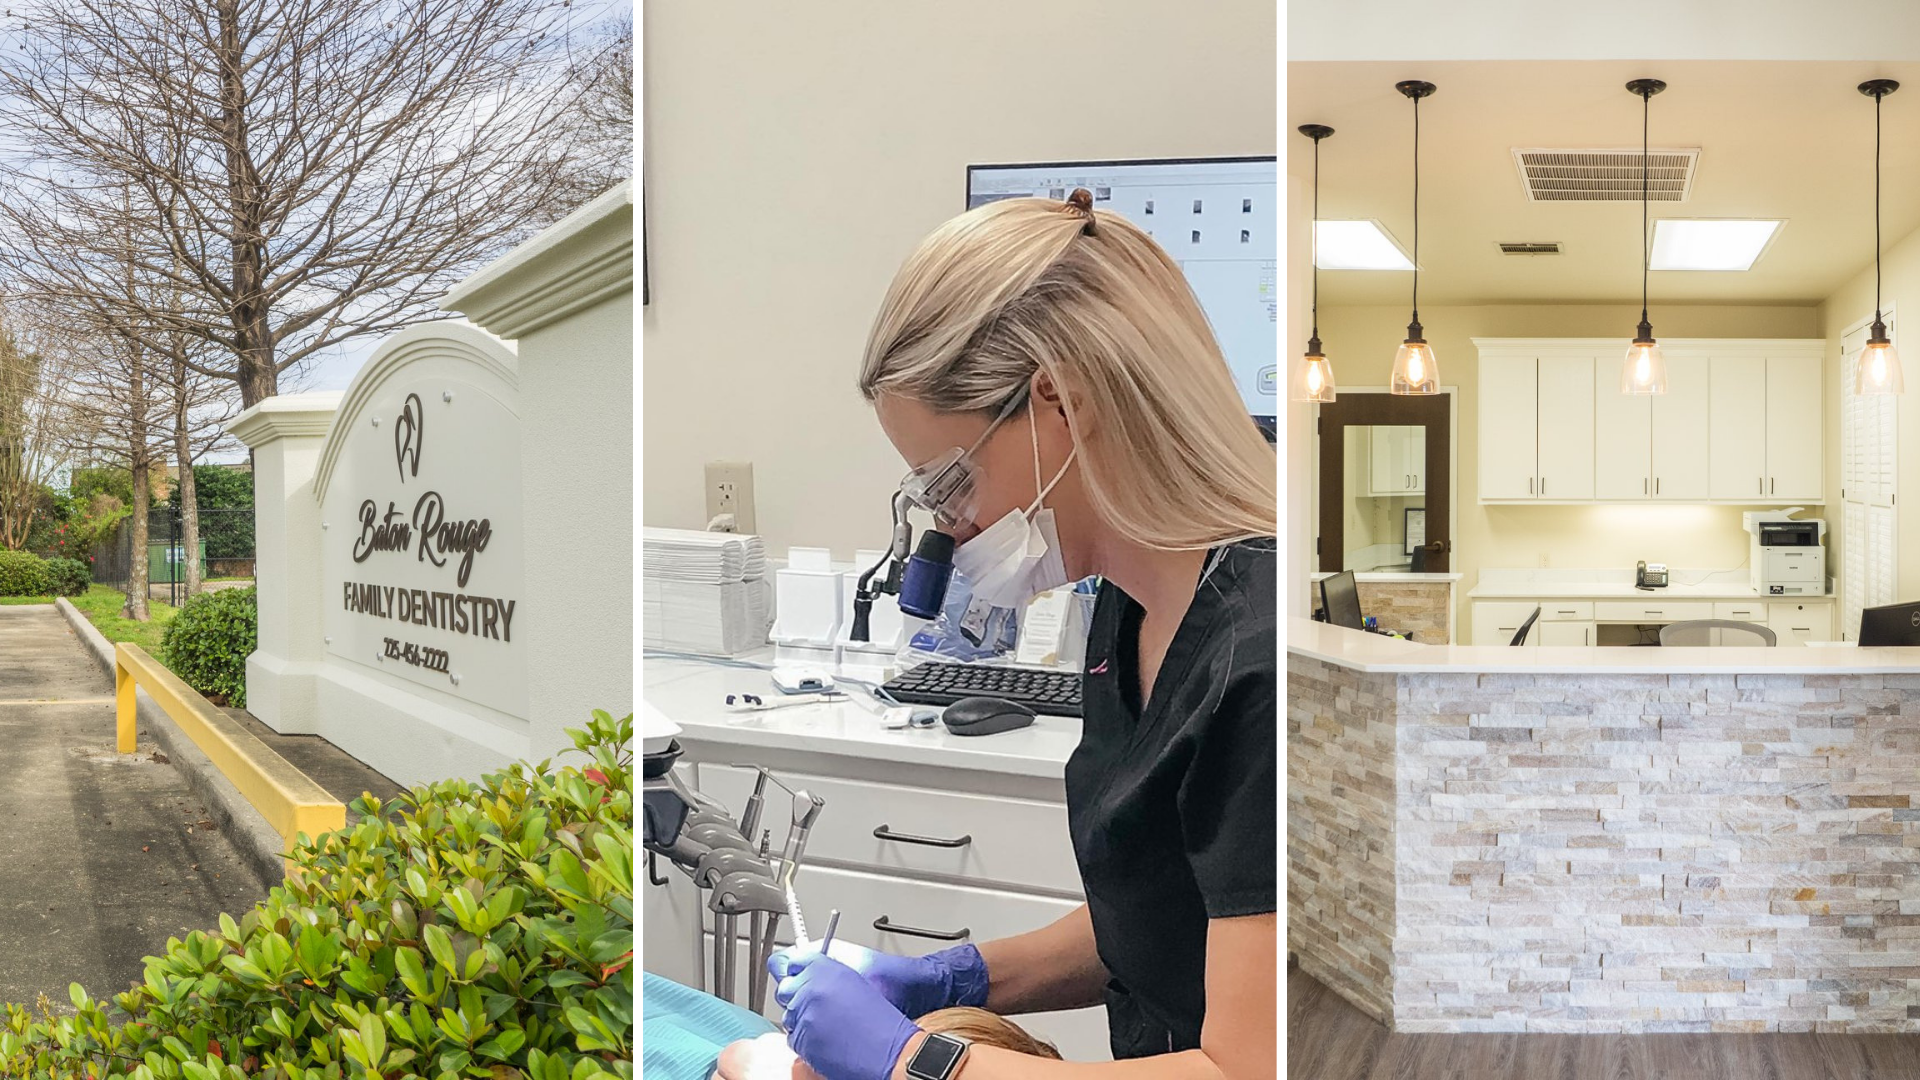 Baton Rouge Family Dentistry